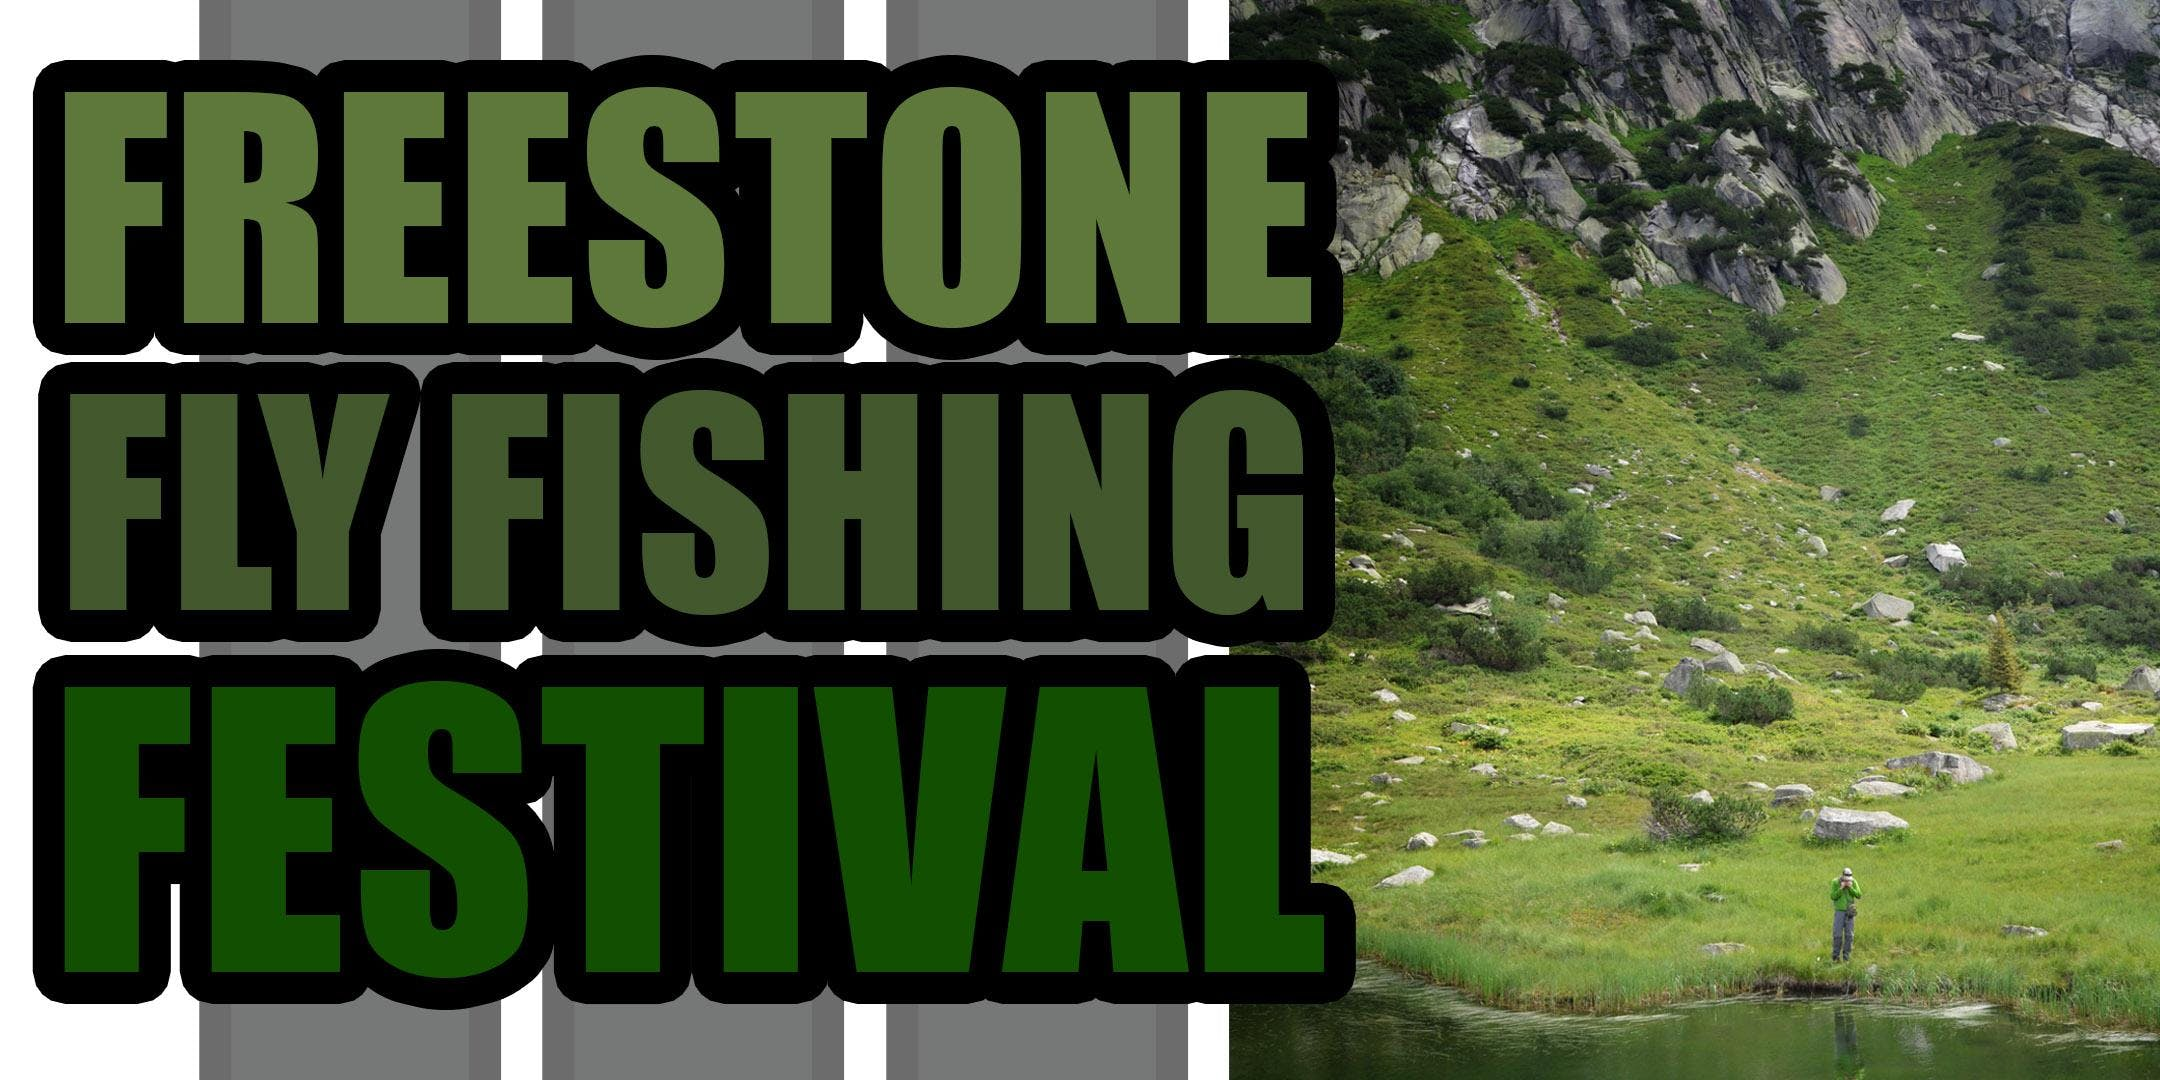 The Freestone Fly Fishing Festival 2018